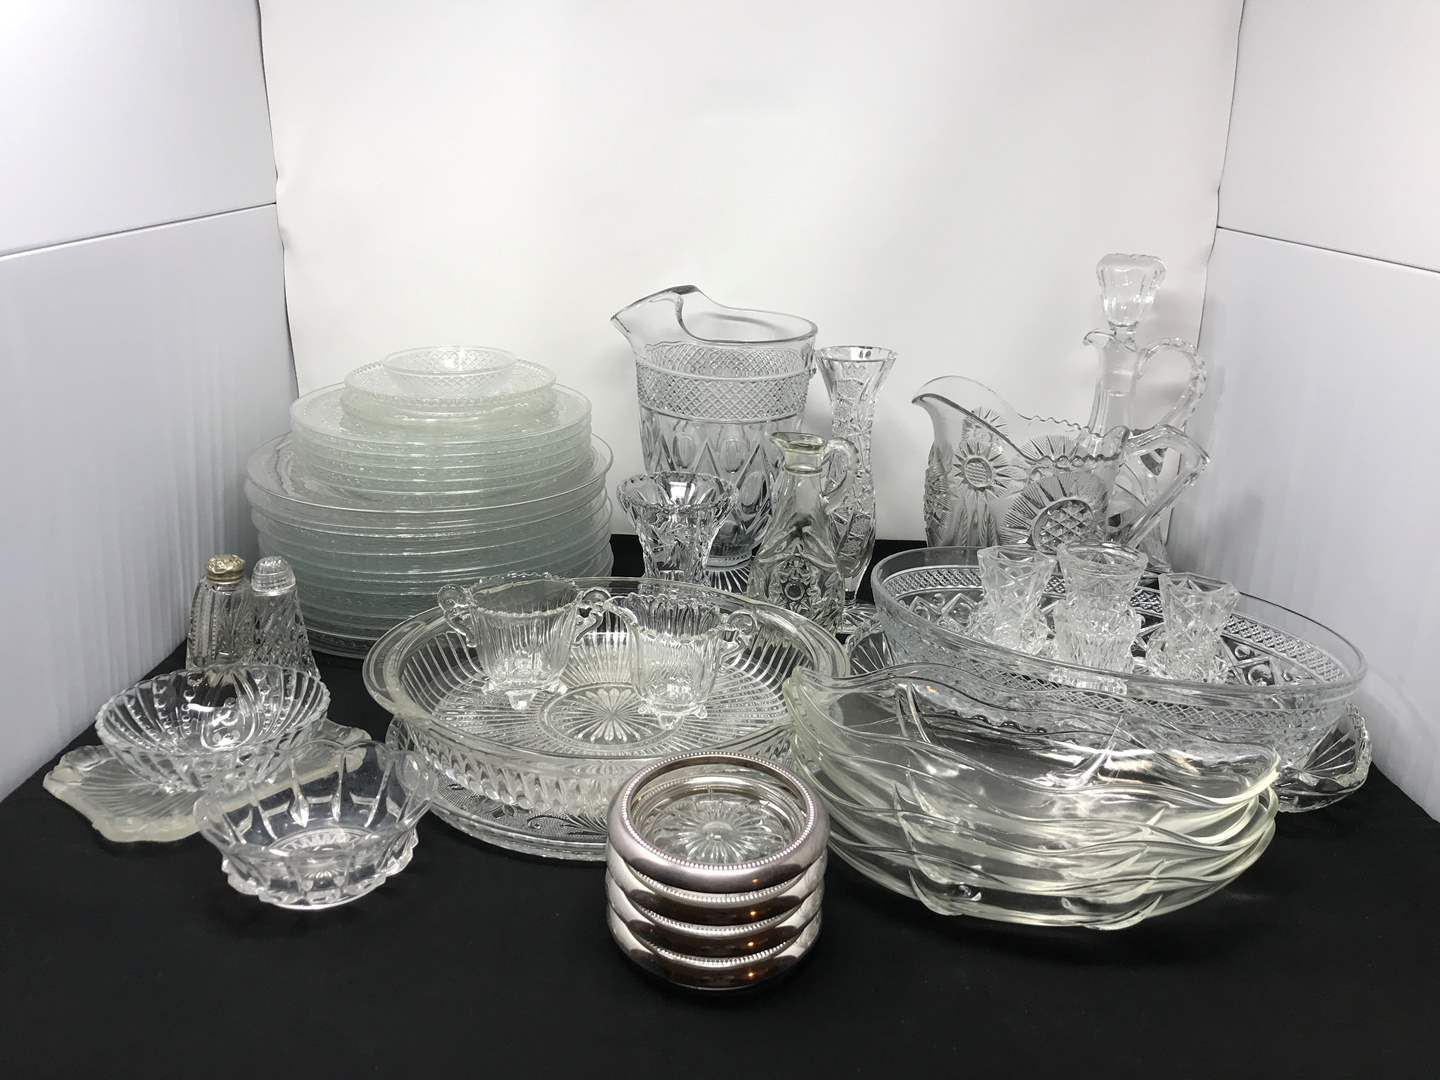 Lot # 54 - Crystal Glass Plates, Coasters, Serving Dishes & More (main image)